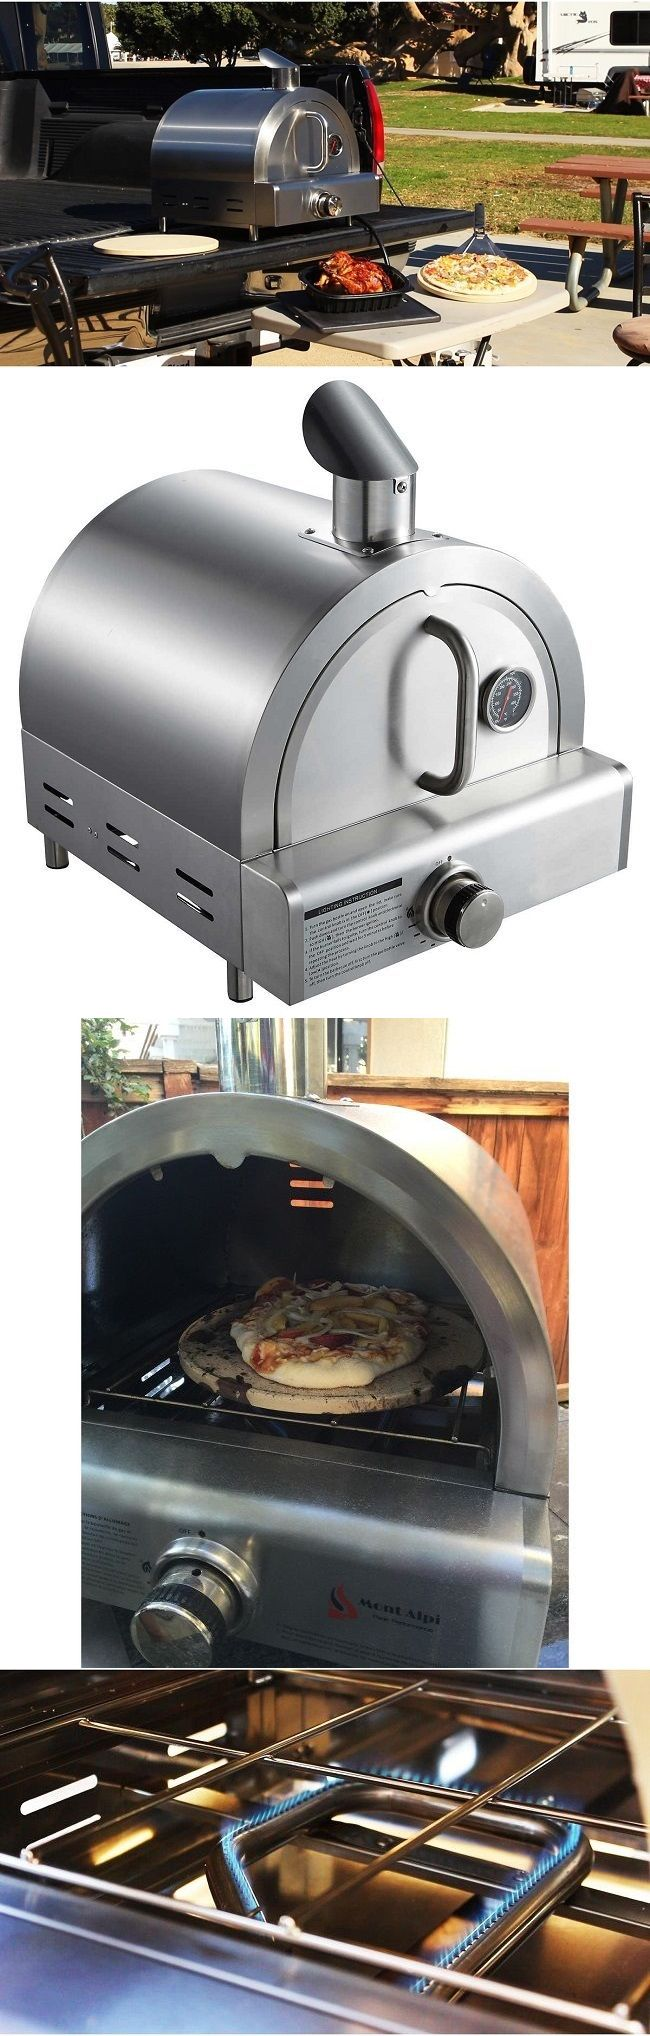 Kitchen small appliances edmonton - Camping Ovens 181387 Frozen Pizza Oven Small Mini Portable Tabletop Stainless Steel Metal For Outdoor